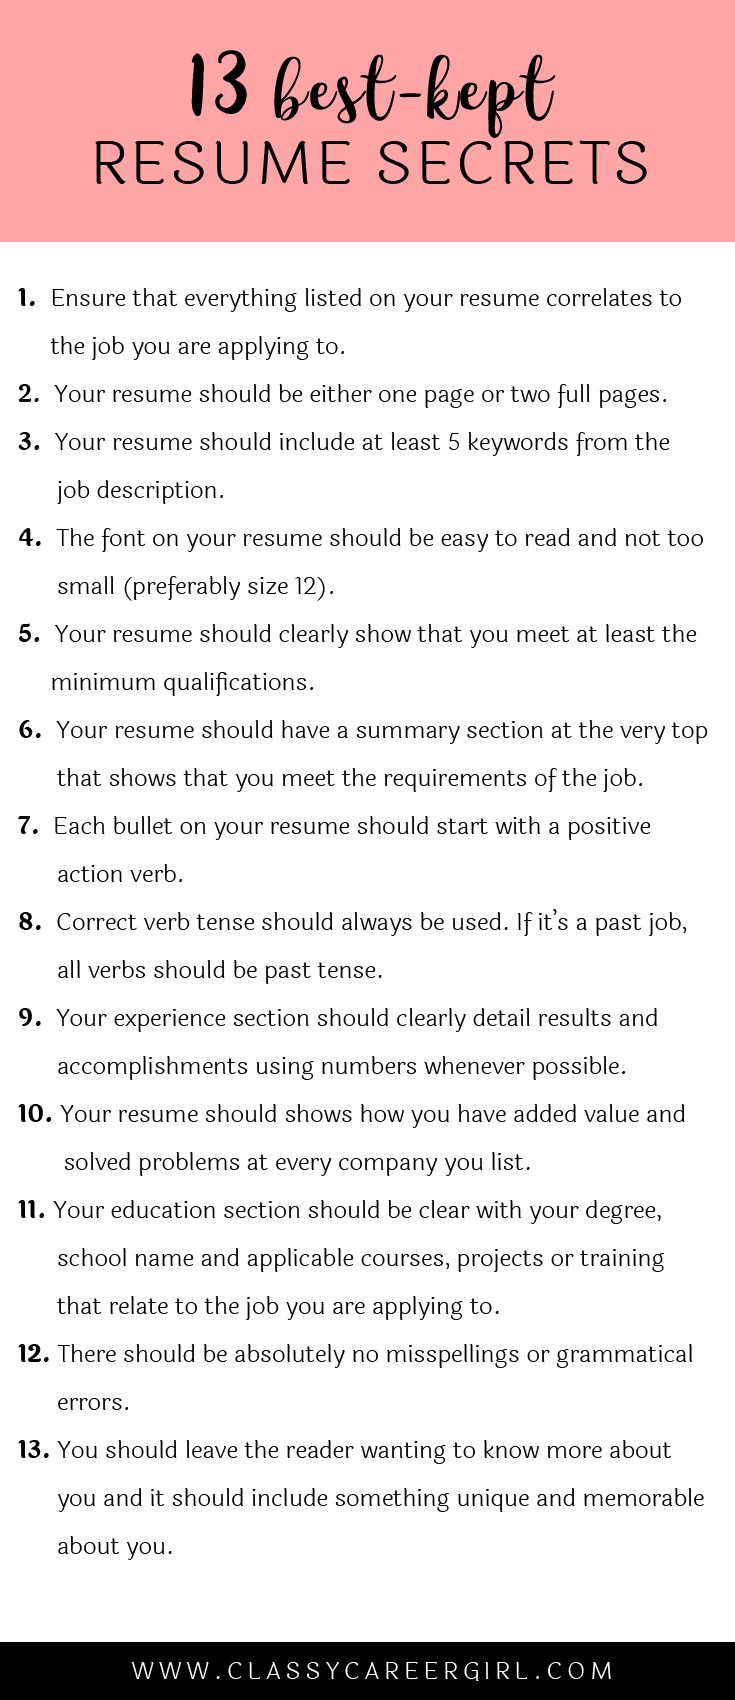 Opposenewapstandardsus  Remarkable  Ideas About Resume On Pinterest  Cv Format Resume Cv And  With Interesting Some Hiring Managers Will Toss Your Resume Out If You Dont Know These  With Enchanting Resume Strong Words Also How To Write A Business Resume In Addition Good Qualities For Resume And Creating A Great Resume As Well As How To Write An Amazing Resume Additionally Project Management Resume Skills From Pinterestcom With Opposenewapstandardsus  Interesting  Ideas About Resume On Pinterest  Cv Format Resume Cv And  With Enchanting Some Hiring Managers Will Toss Your Resume Out If You Dont Know These  And Remarkable Resume Strong Words Also How To Write A Business Resume In Addition Good Qualities For Resume From Pinterestcom